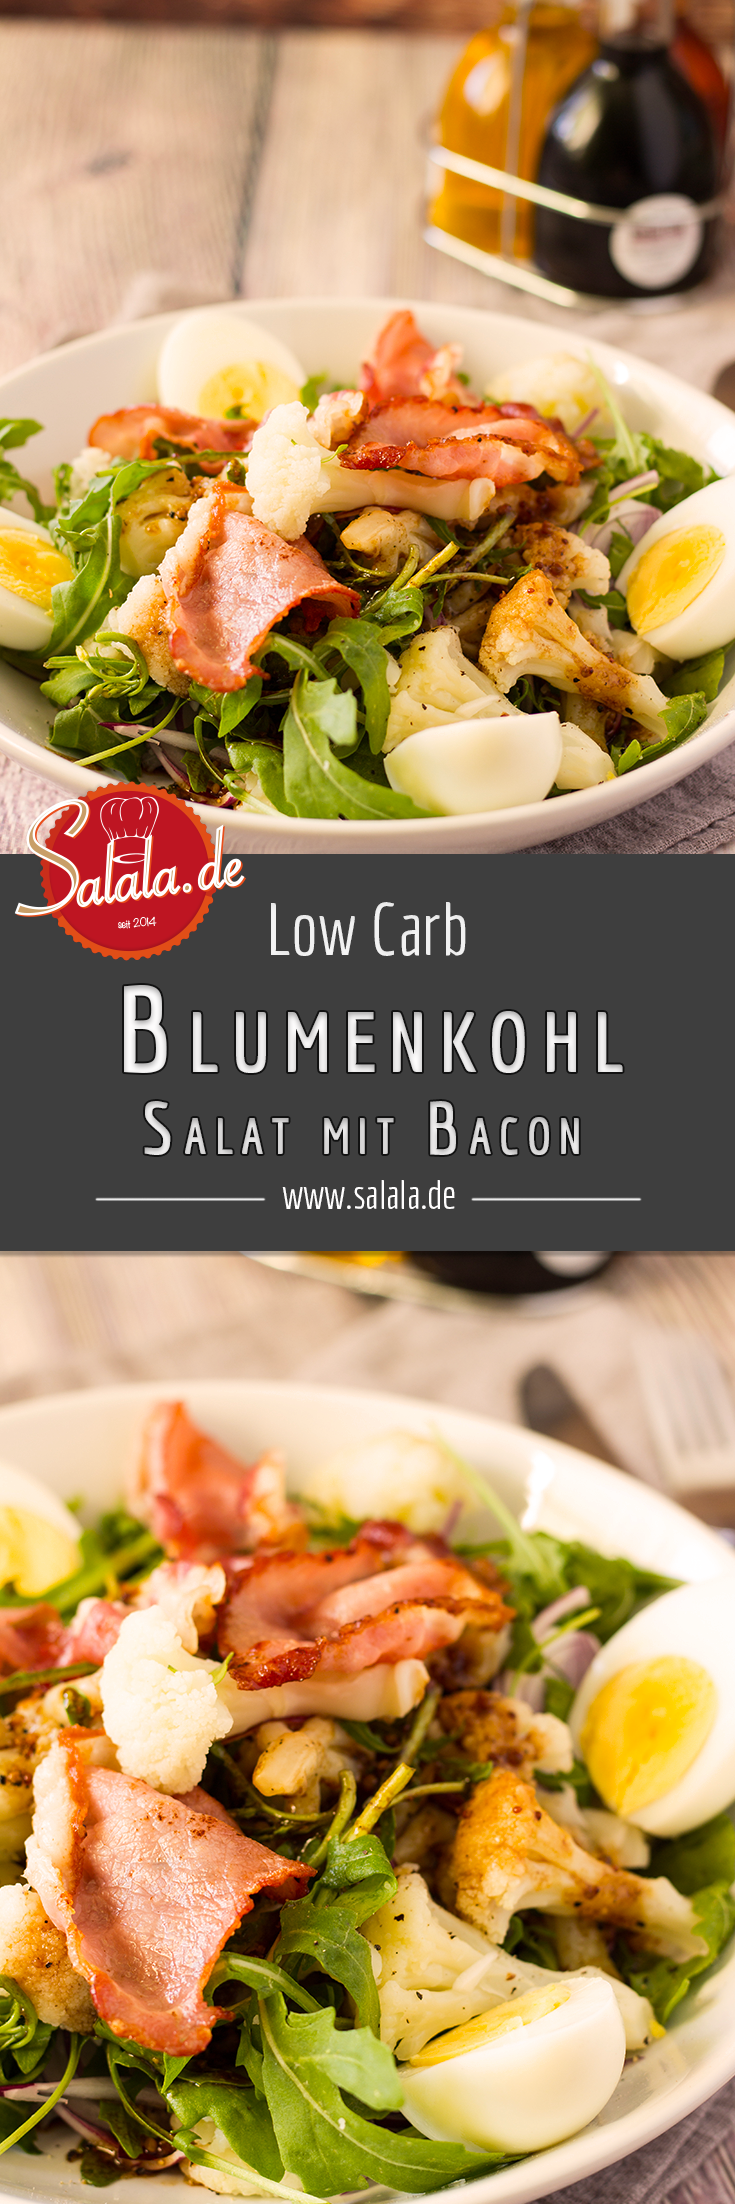 herbstlicher low carb blumenkohlsalat mit bacon low carb mit vroni nico. Black Bedroom Furniture Sets. Home Design Ideas